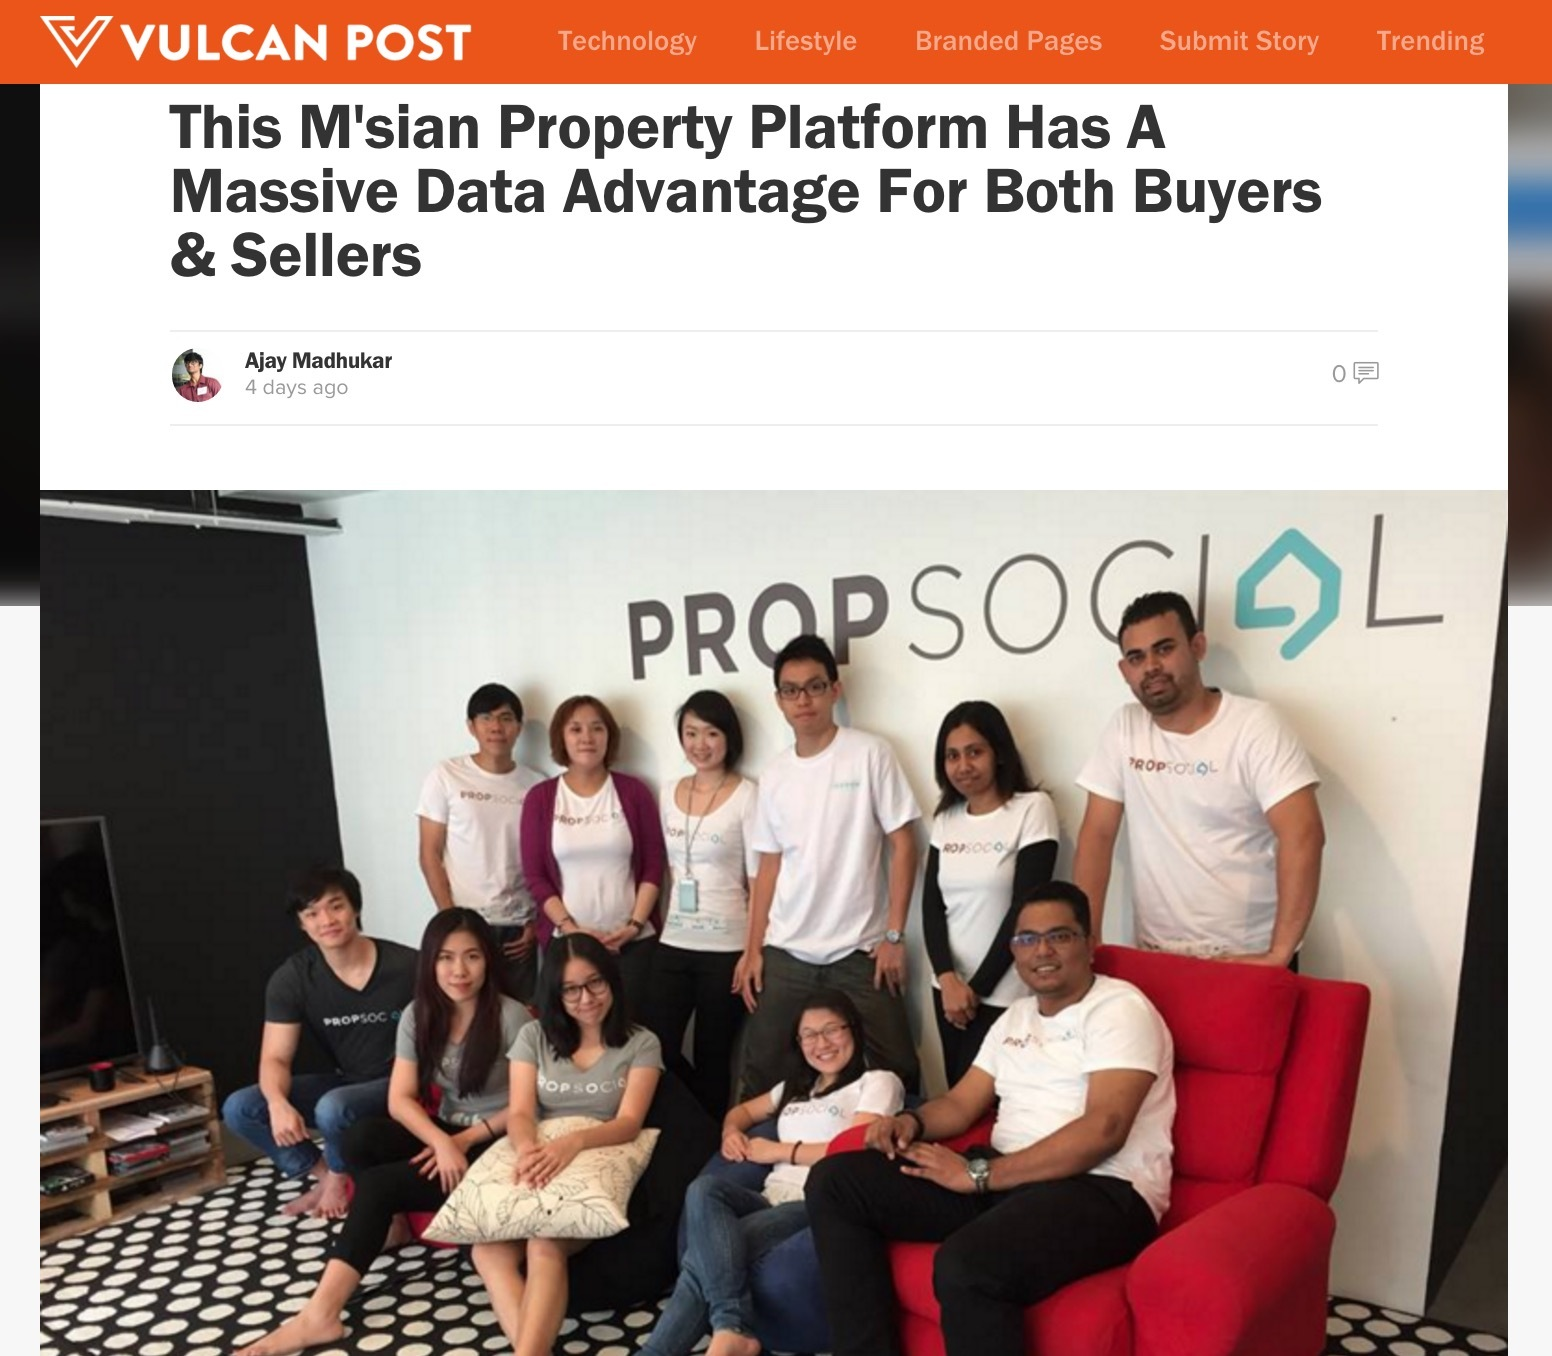 Propsocial property